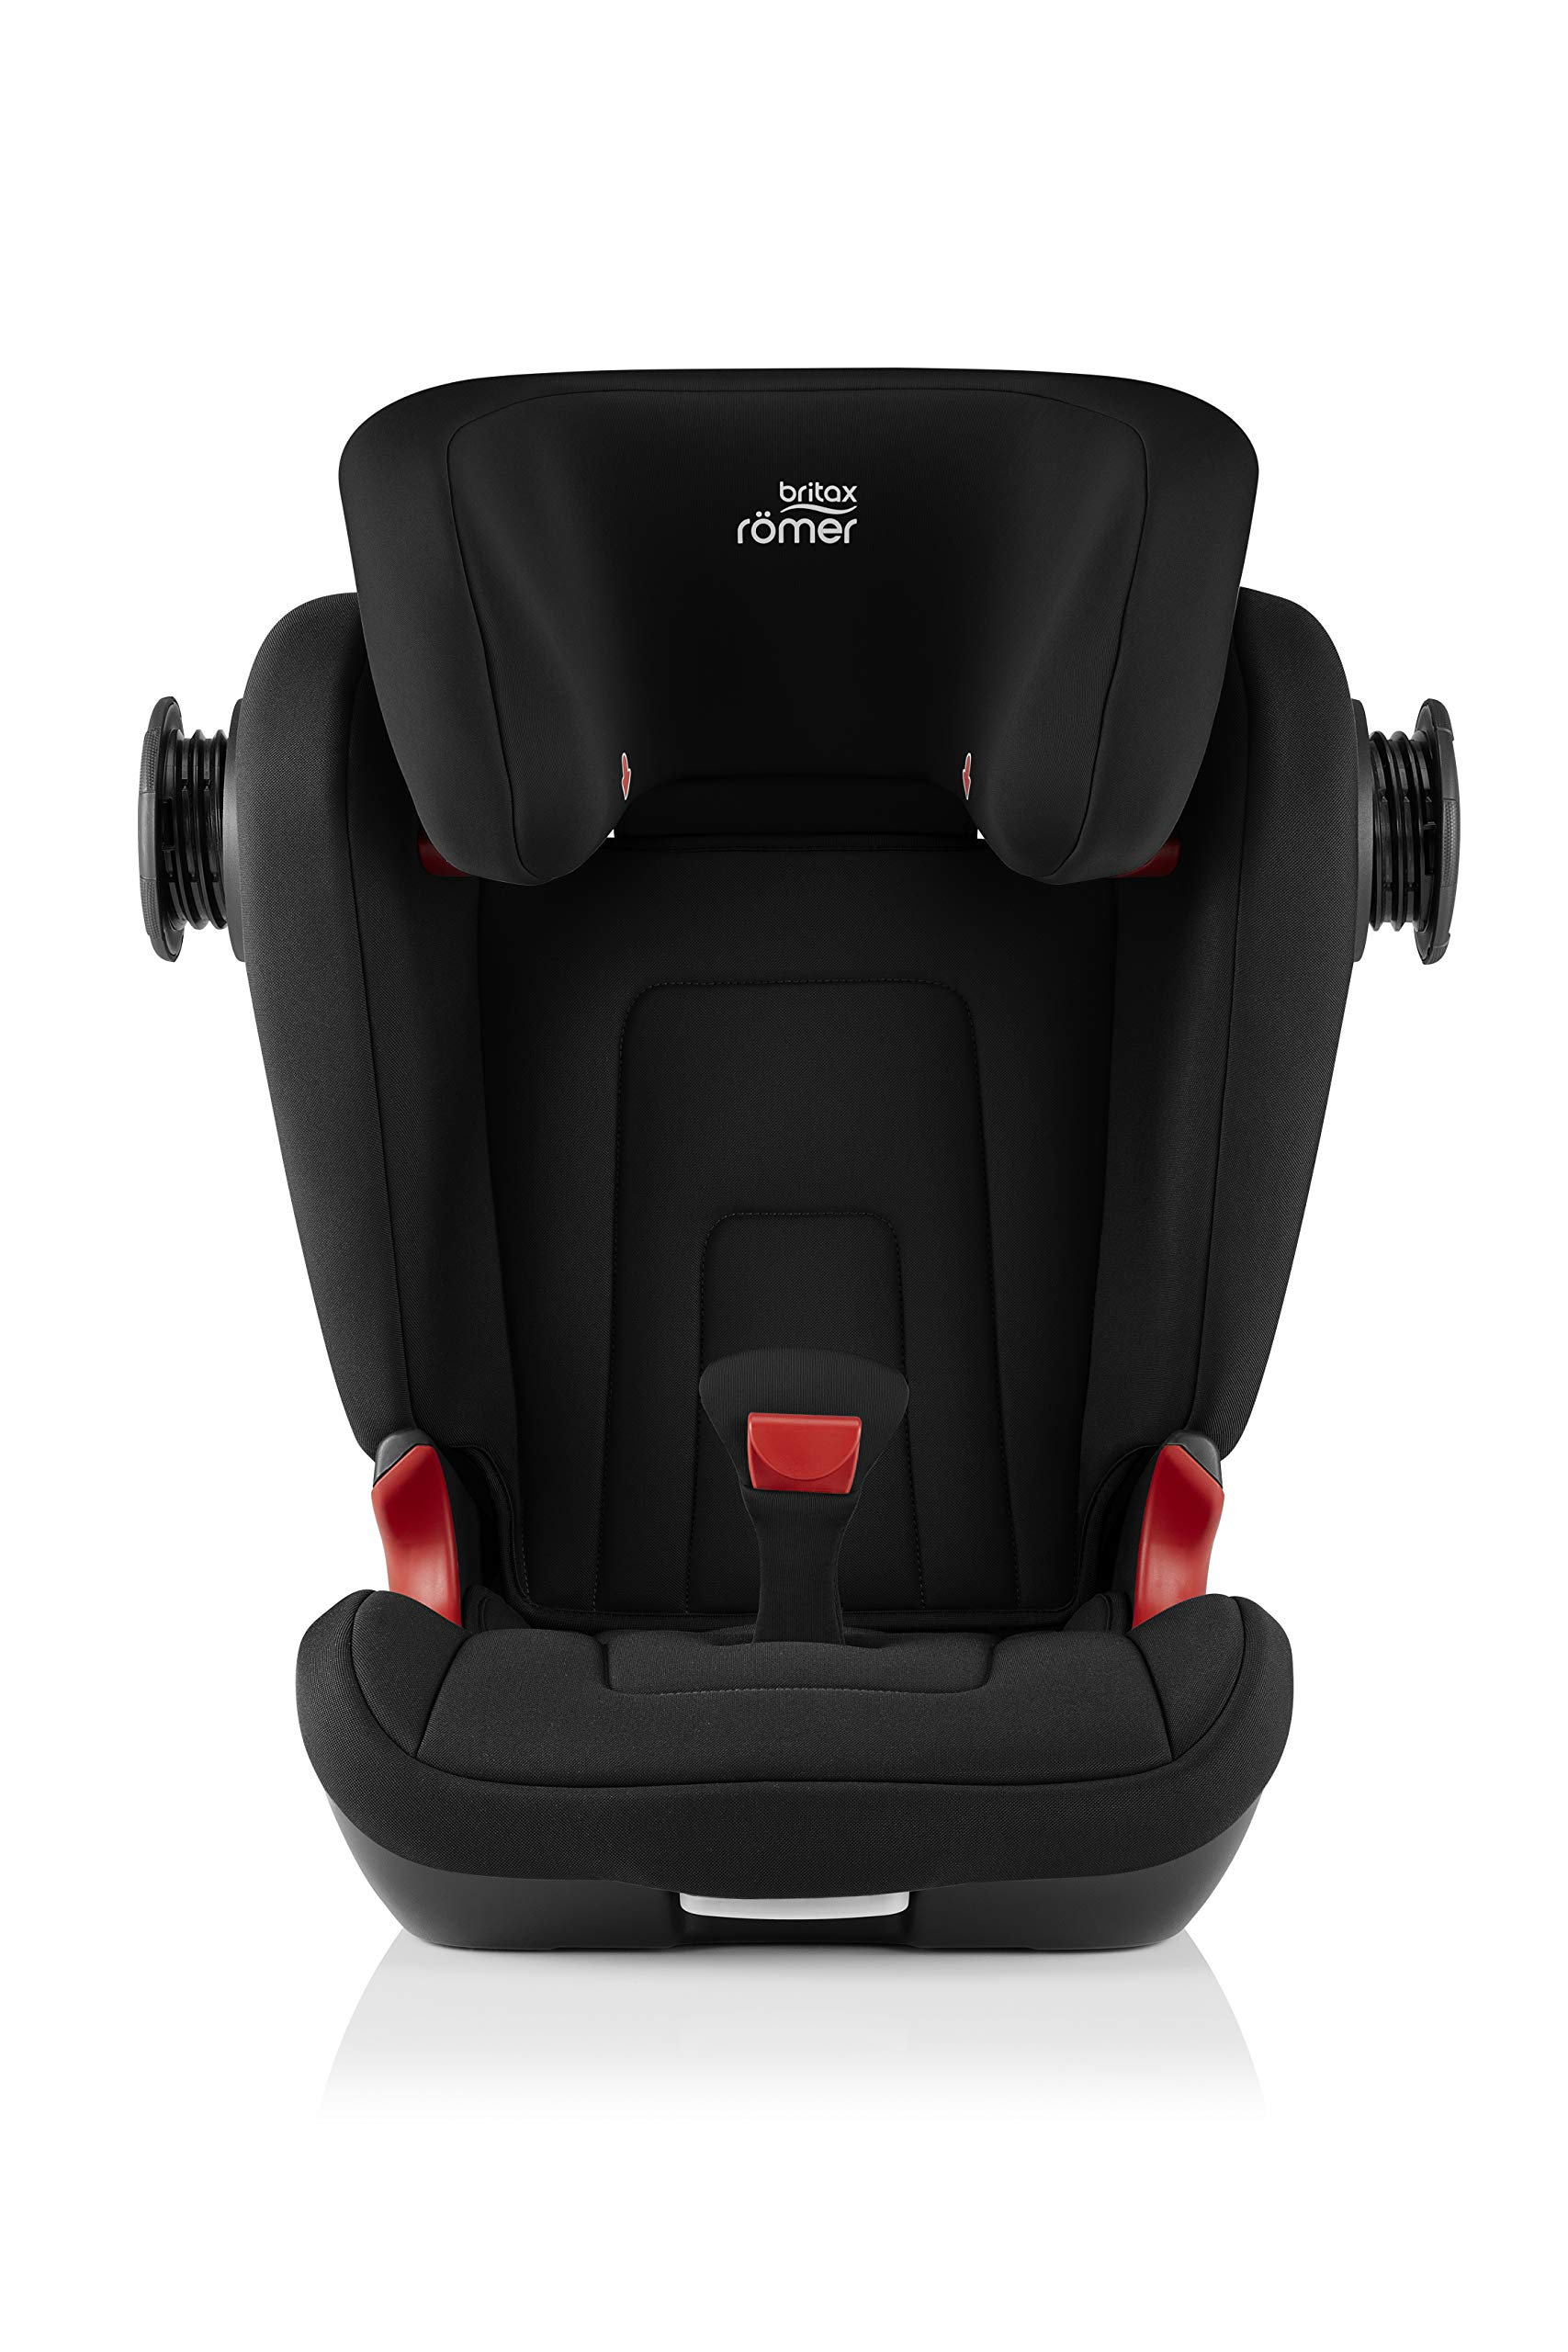 Britax Römer KIDFIX² S Group 2-3 (15-36kg) Car Seat - Cosmos Black  Advanced side impact protection - sict offers superior protection to your child in the event of a side collision. reducing impact forces by minimising the distance between the car and the car seat. Secure guard - helps to protect your child's delicate abdominal area by adding an extra - a 4th - contact point to the 3-point seat belt. High back booster - protects your child in 3 ways: provides head to hip protection; belt guides provide correct positioning of the seat belt and the padded headrest provides safety and comfort. 6